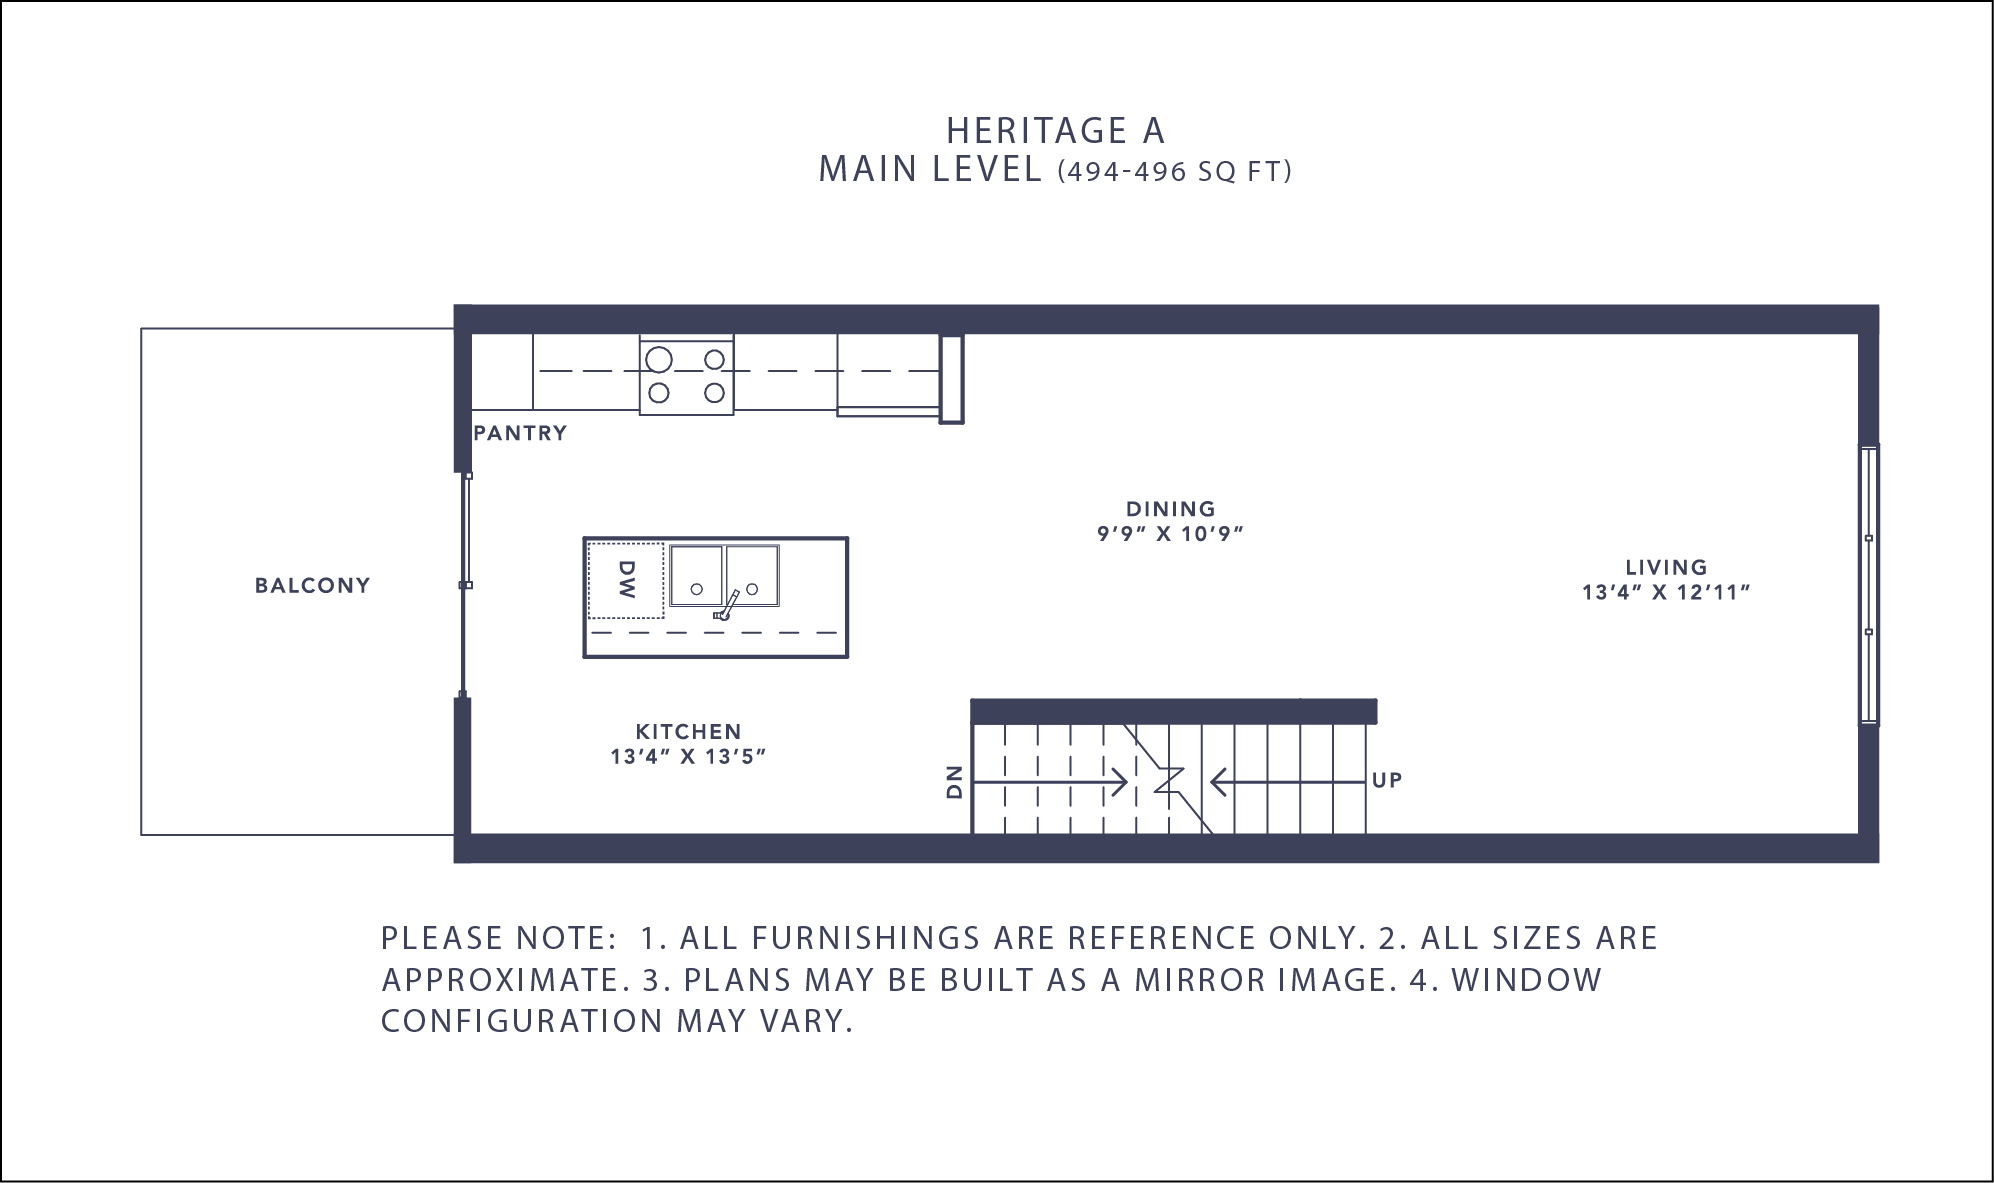 Heritage A Floorplan - Main Level